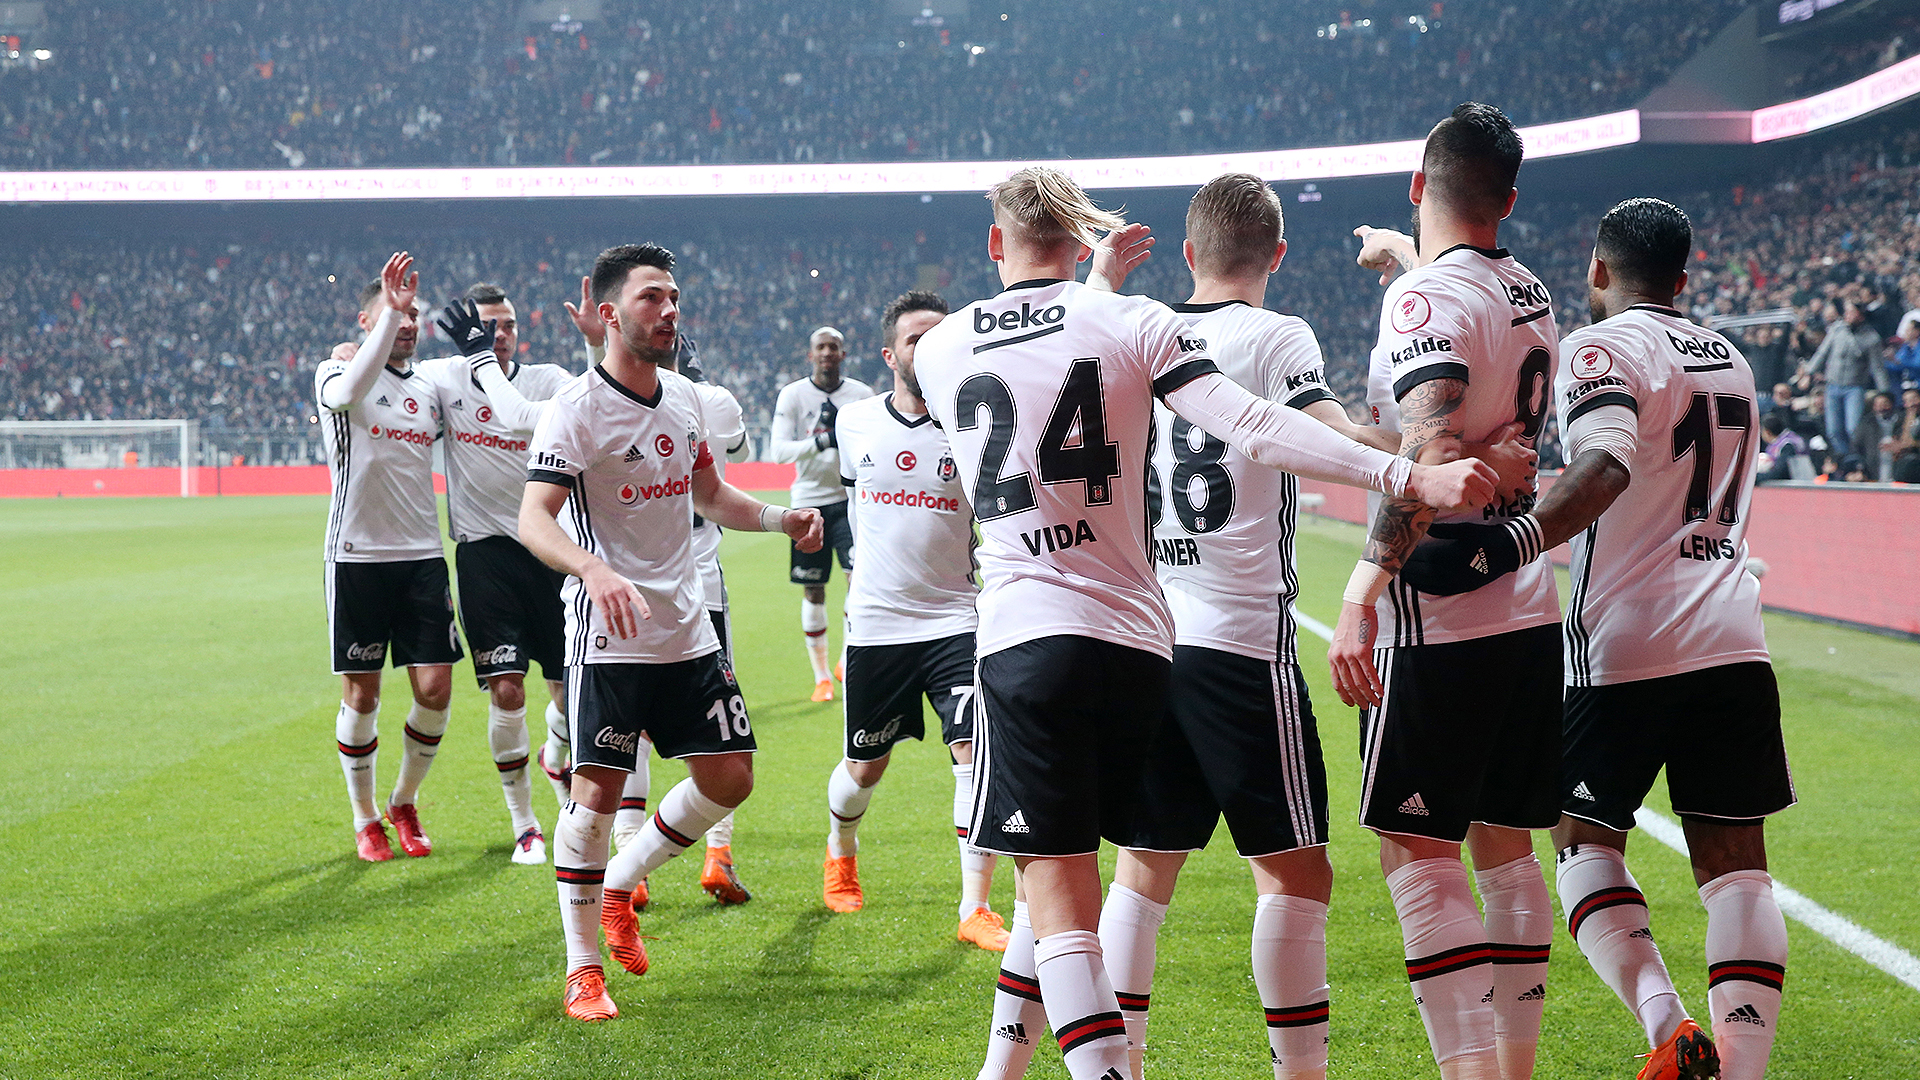 Besiktas goal celebration Fenerbahce 03012018